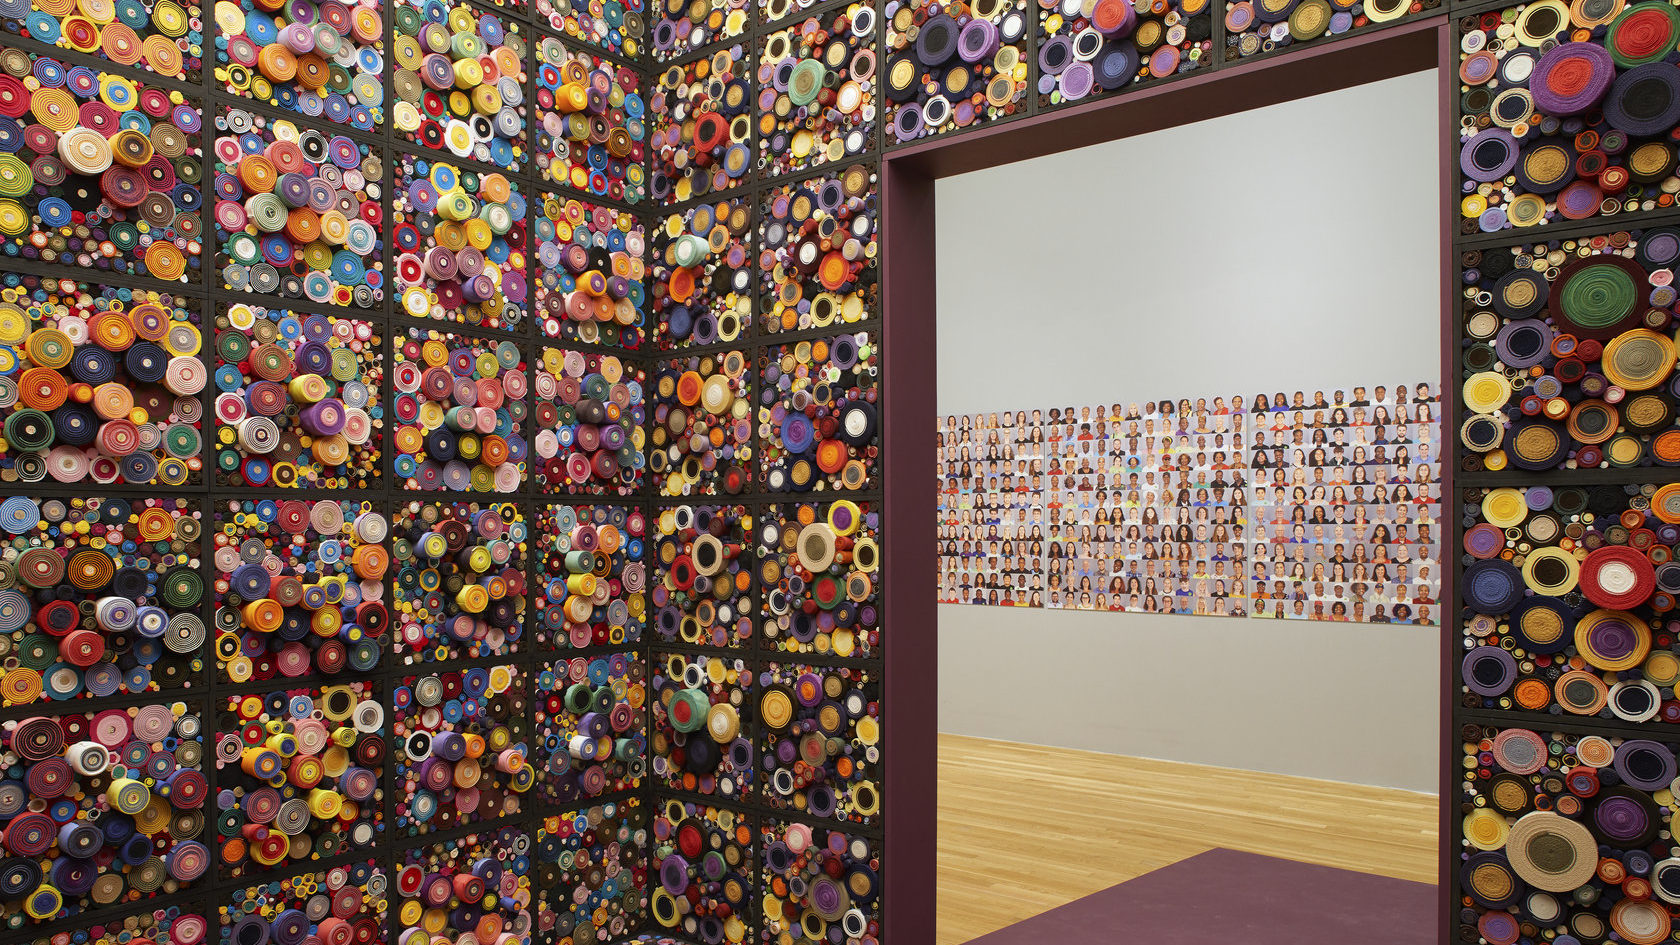 An immersion room inside of a museum gallery has cubes of textured, colorful bundles around the walls, and a grid of portraits is visible in the gallery beyond the door.